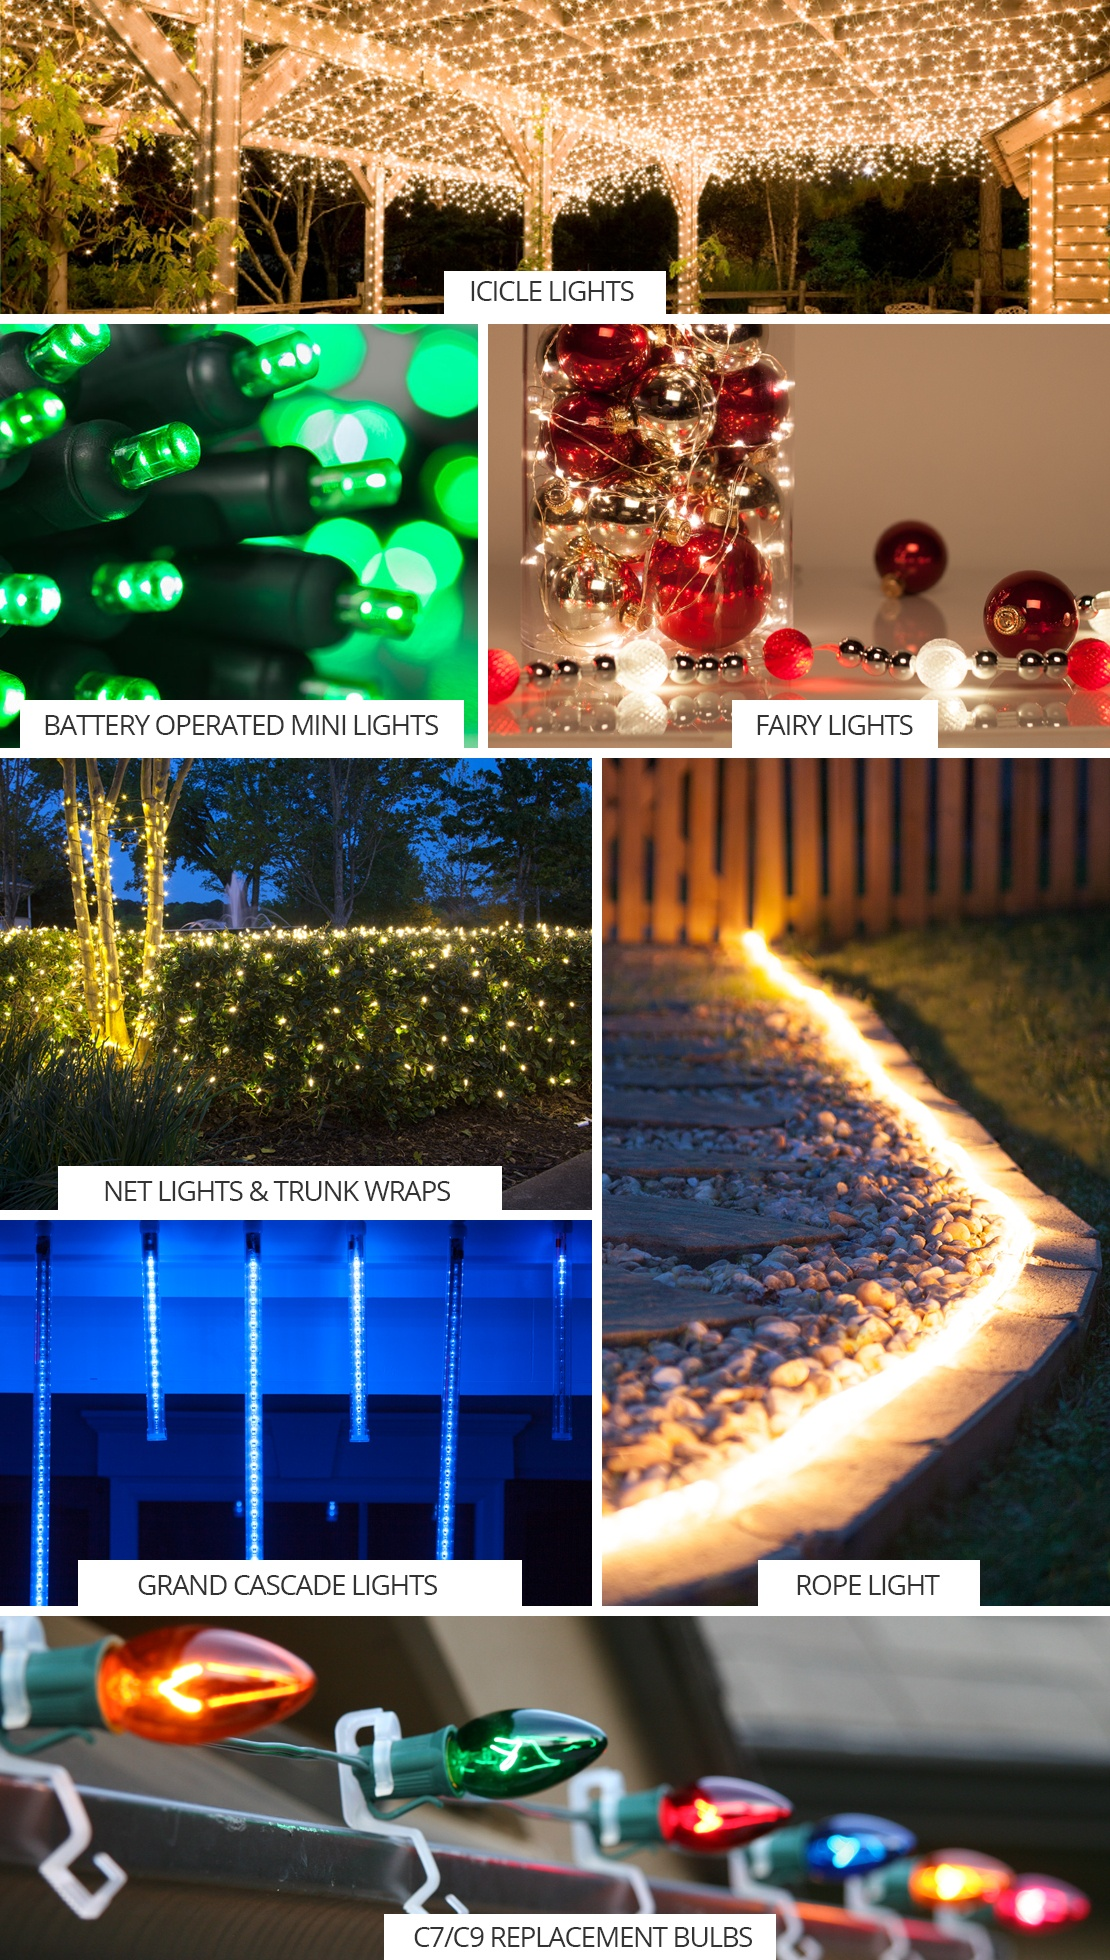 LED Christmas light style guide.